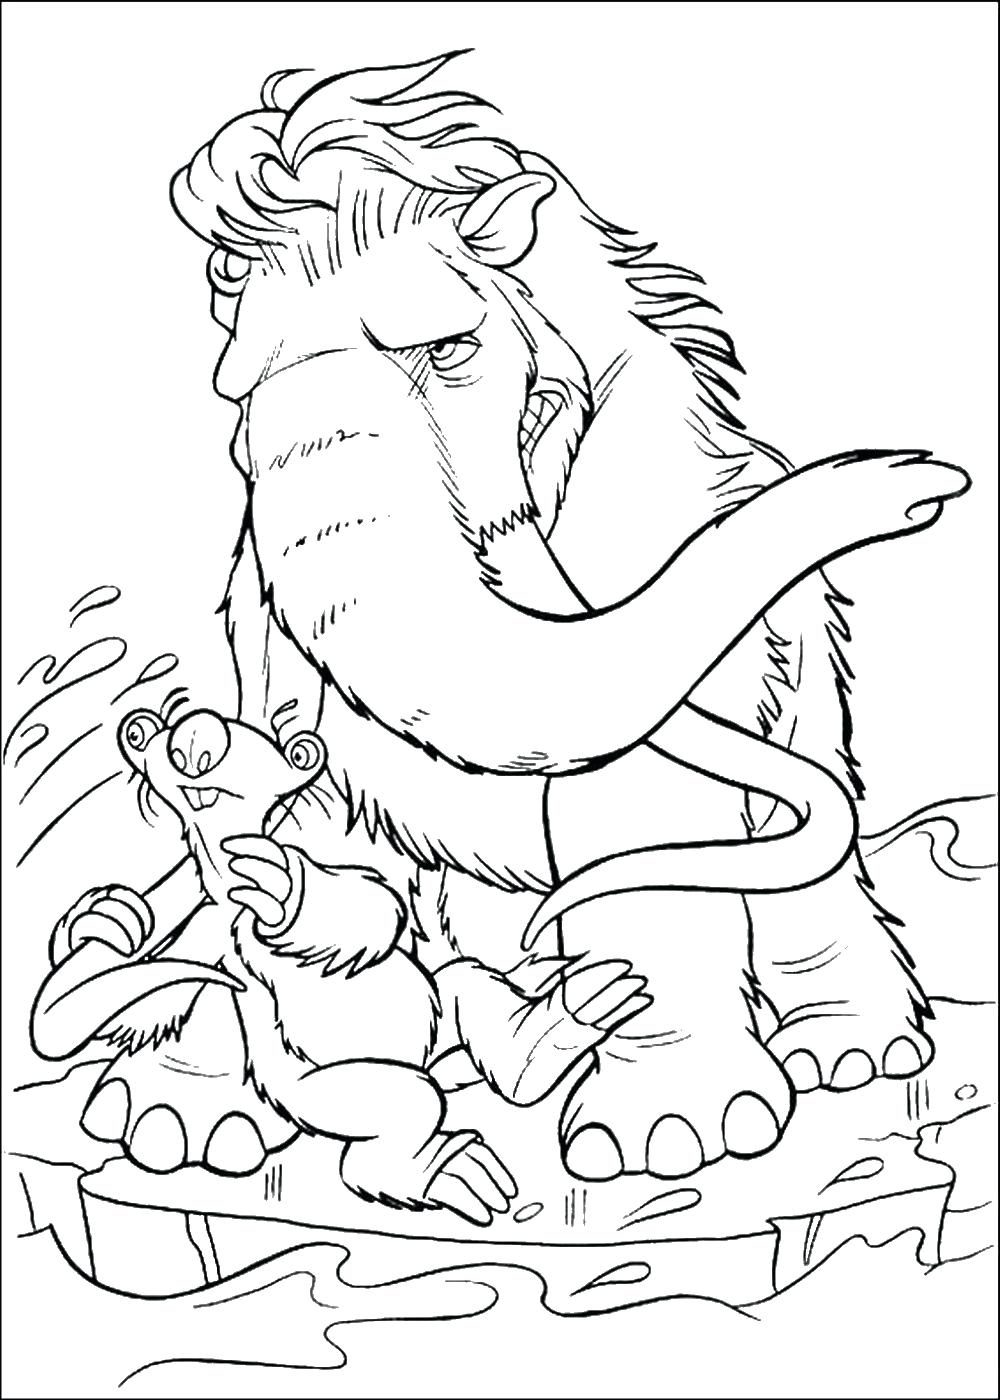 1000x1400 Coloring Pages Ice Age Coloring Pages Woolly Mammoth Shira Ice